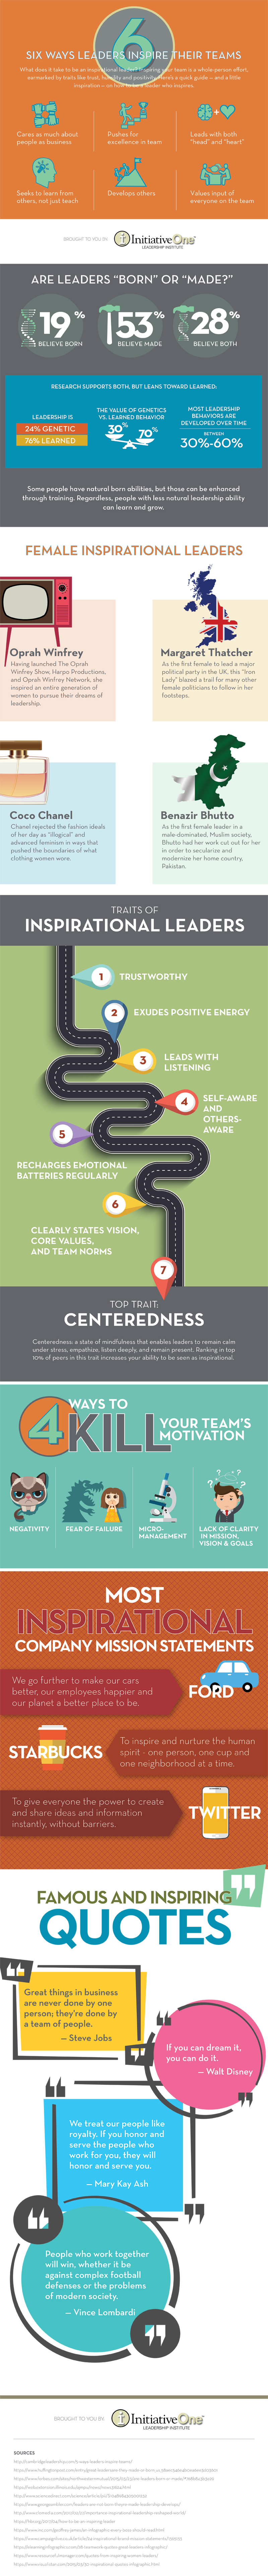 How to Inspire Teams: 6 Best Ways Leaders Can Use (INFOGRAPHIC)